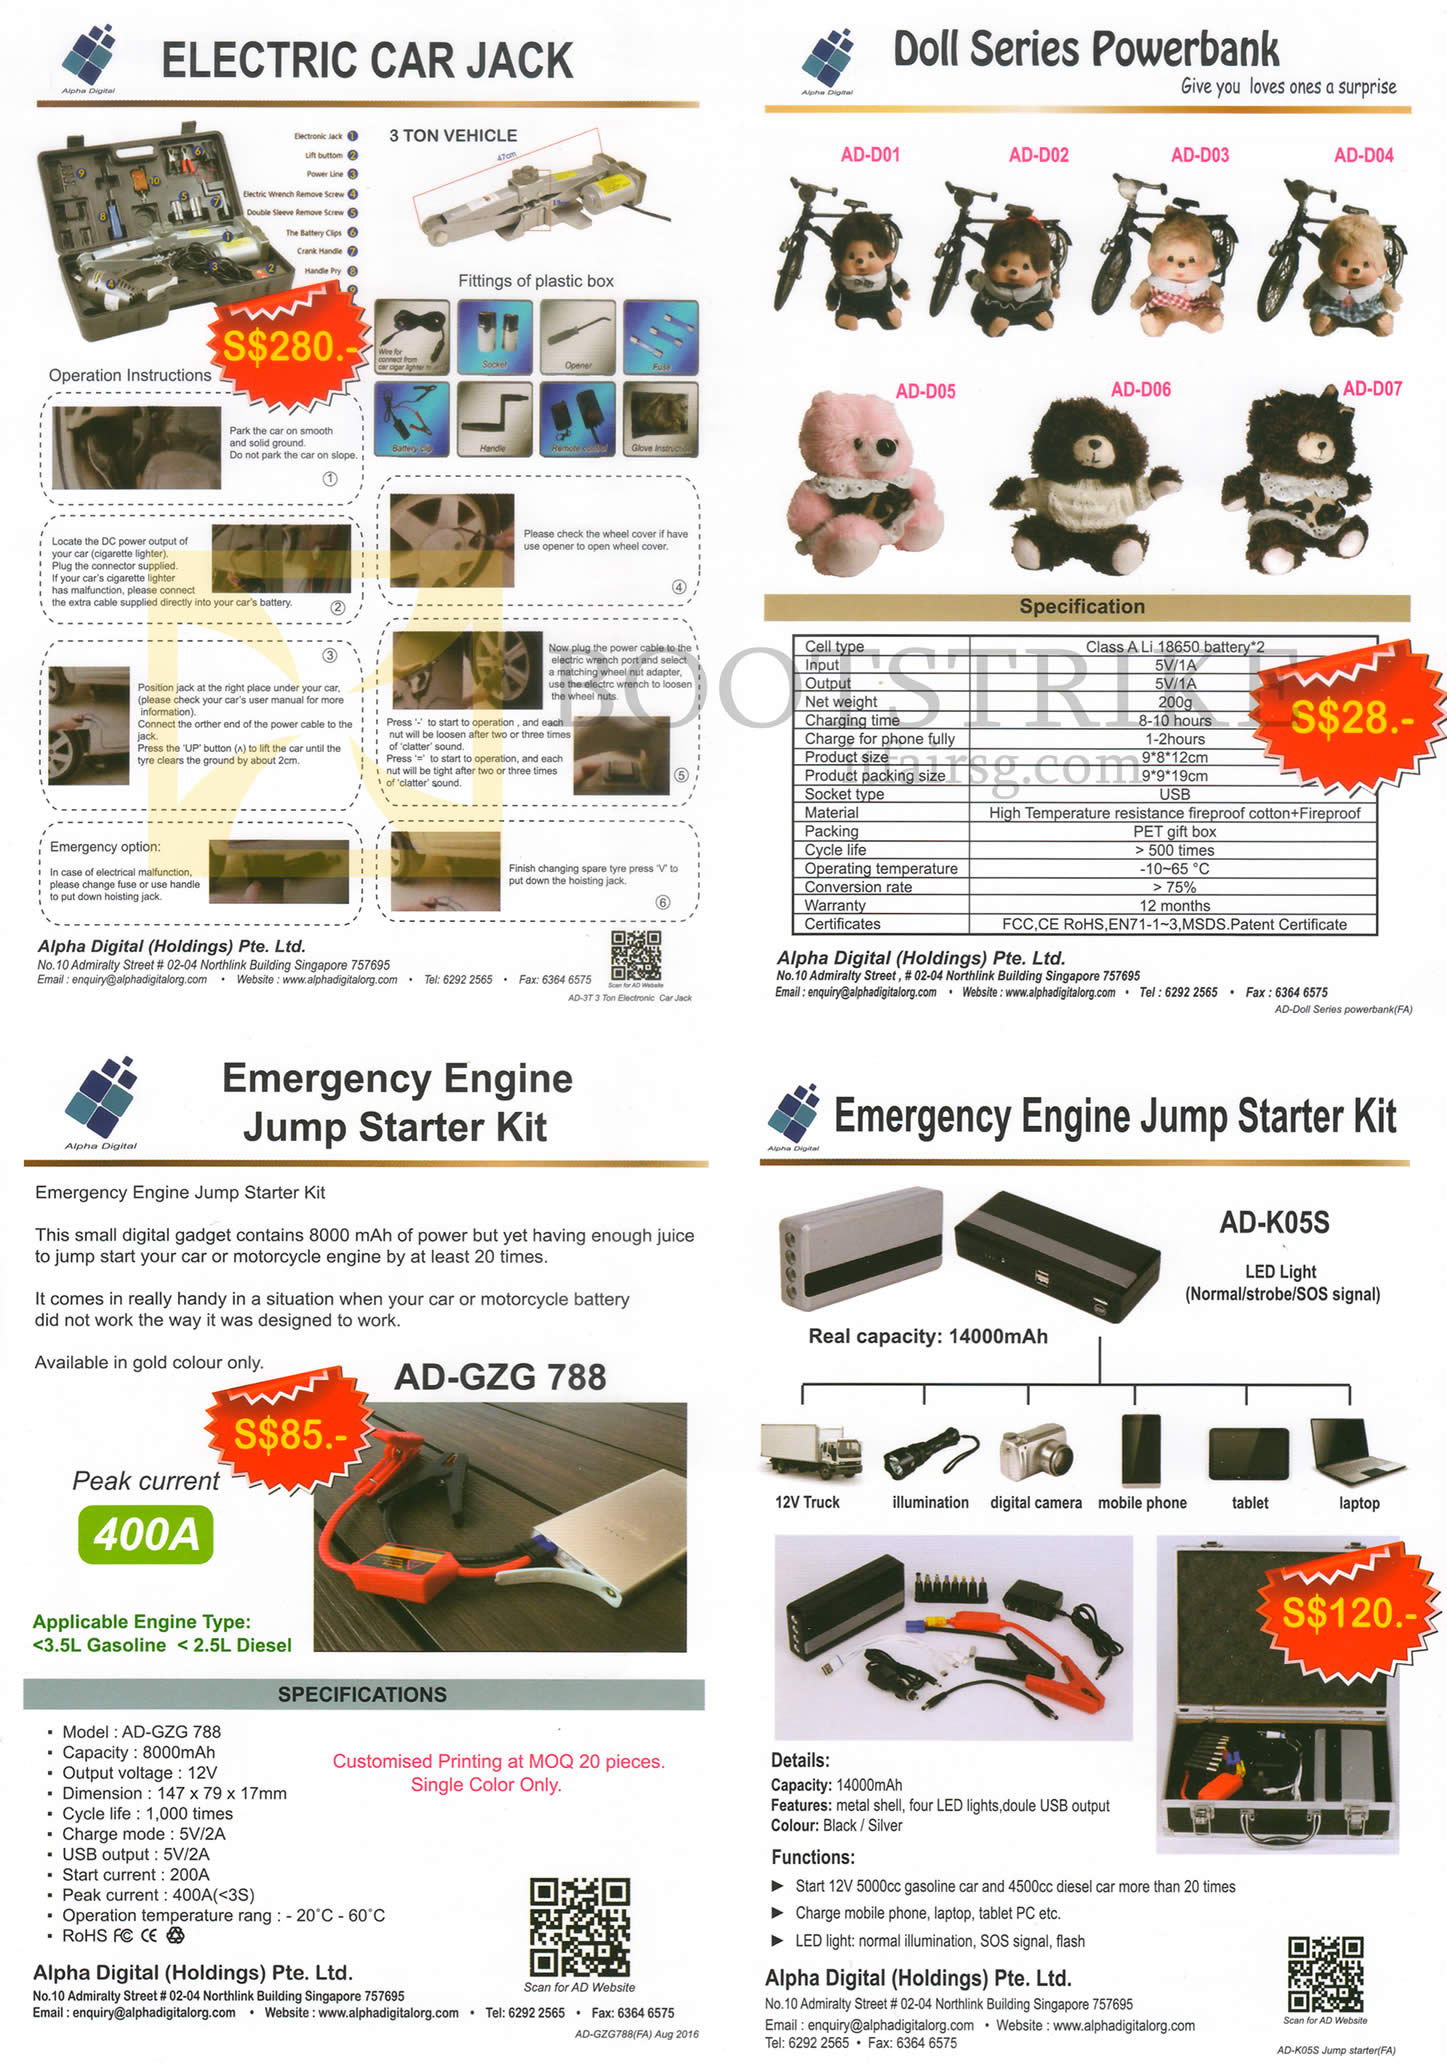 COMEX 2016 price list image brochure of Alpha Digital Electric Car Jack, Doll Series Powerbank, Emergency Engine Jump Starter Kit, AD-GZG 788, AD-K05S